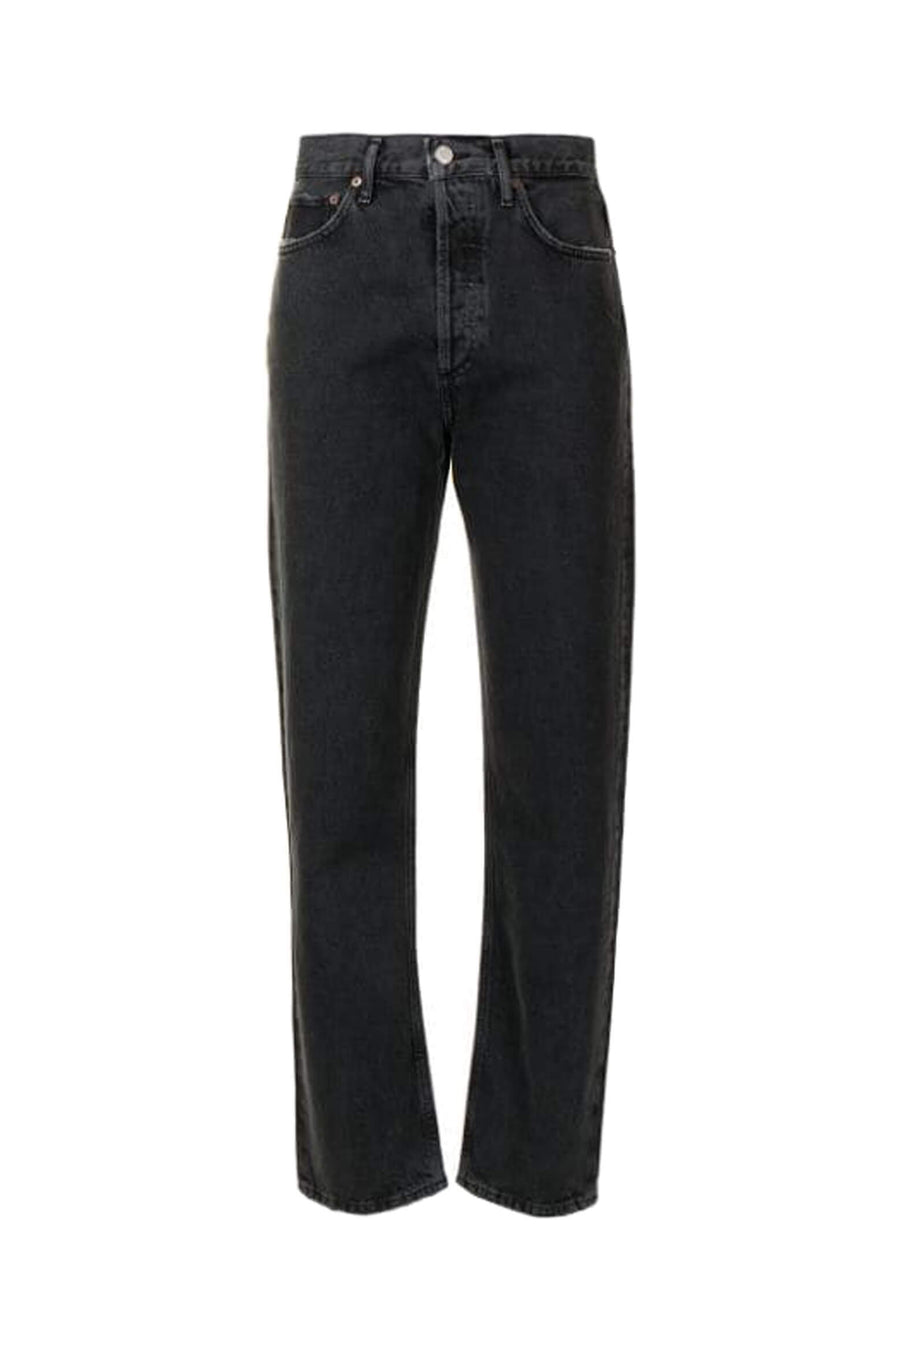 Agolde 90's Pinch Waist Jean in Black Tea from The New Trend